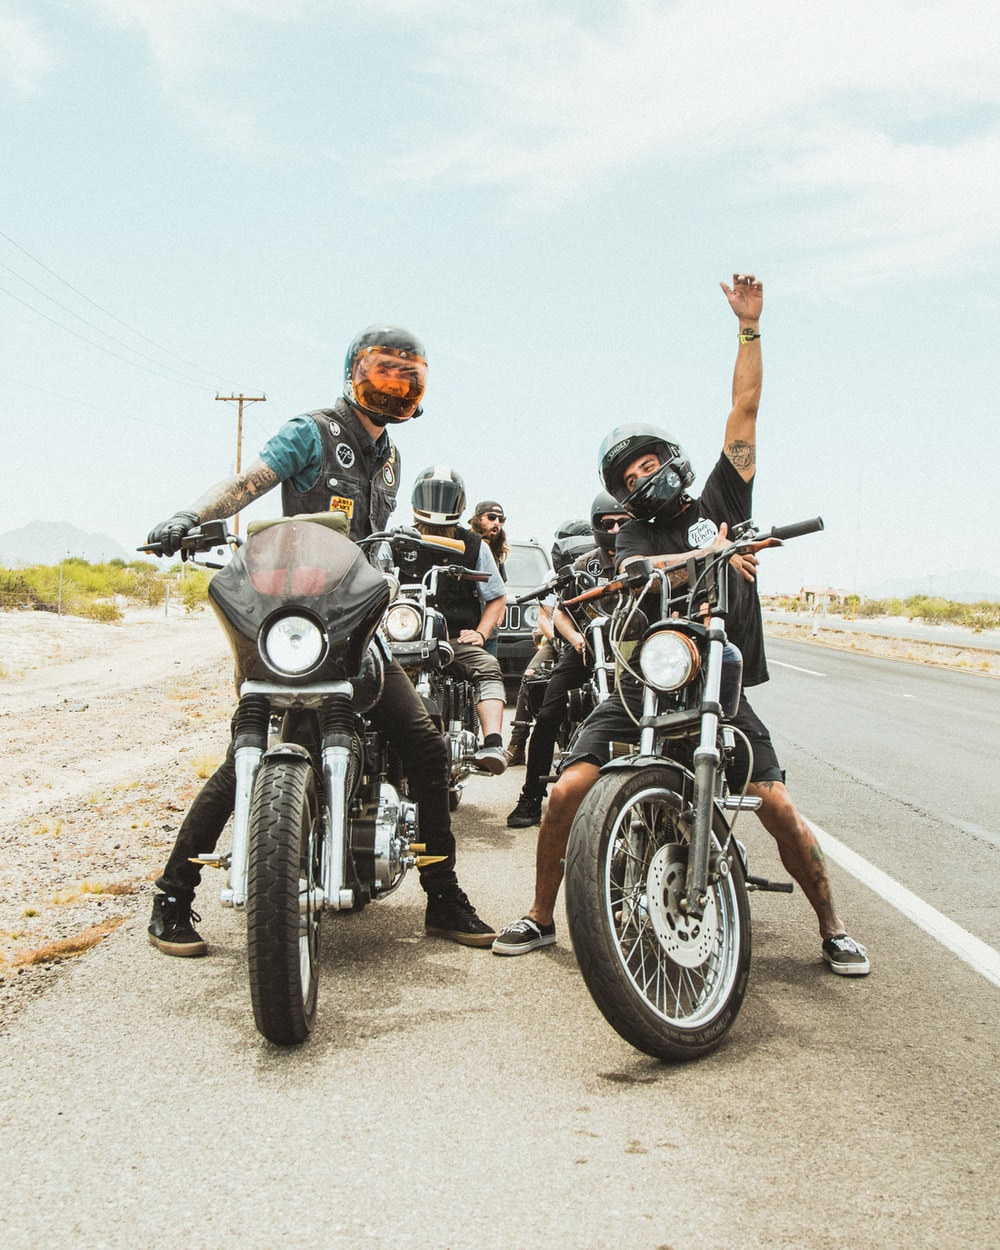 Touring Motorcycles For A Great Family Vacation